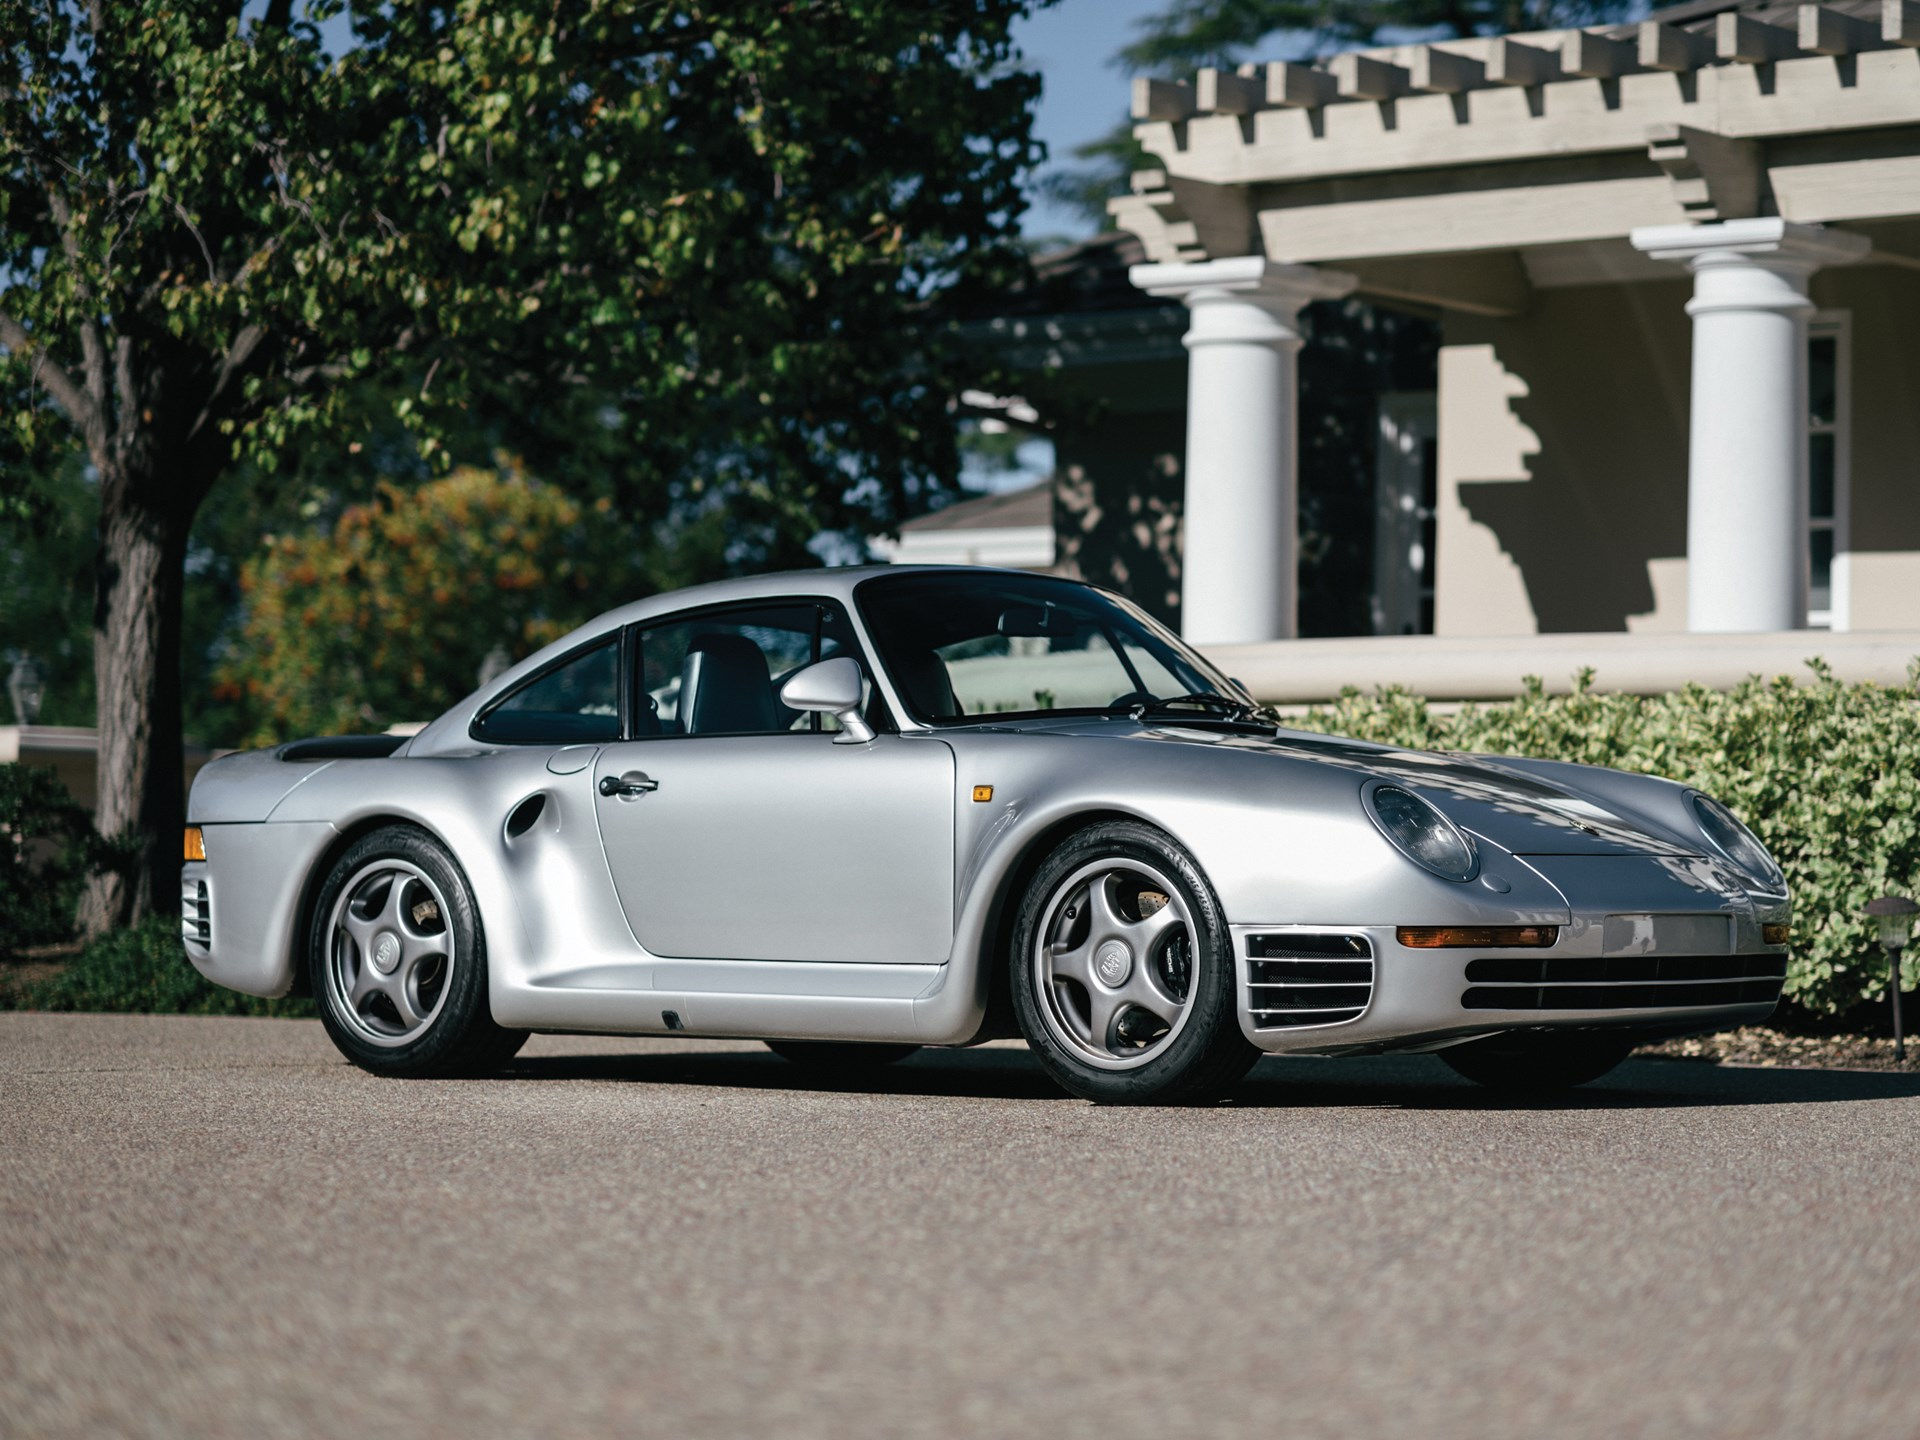 Porsche 959 For Sale >> Rm Sotheby S 1987 Porsche 959 Komfort Arizona 2018